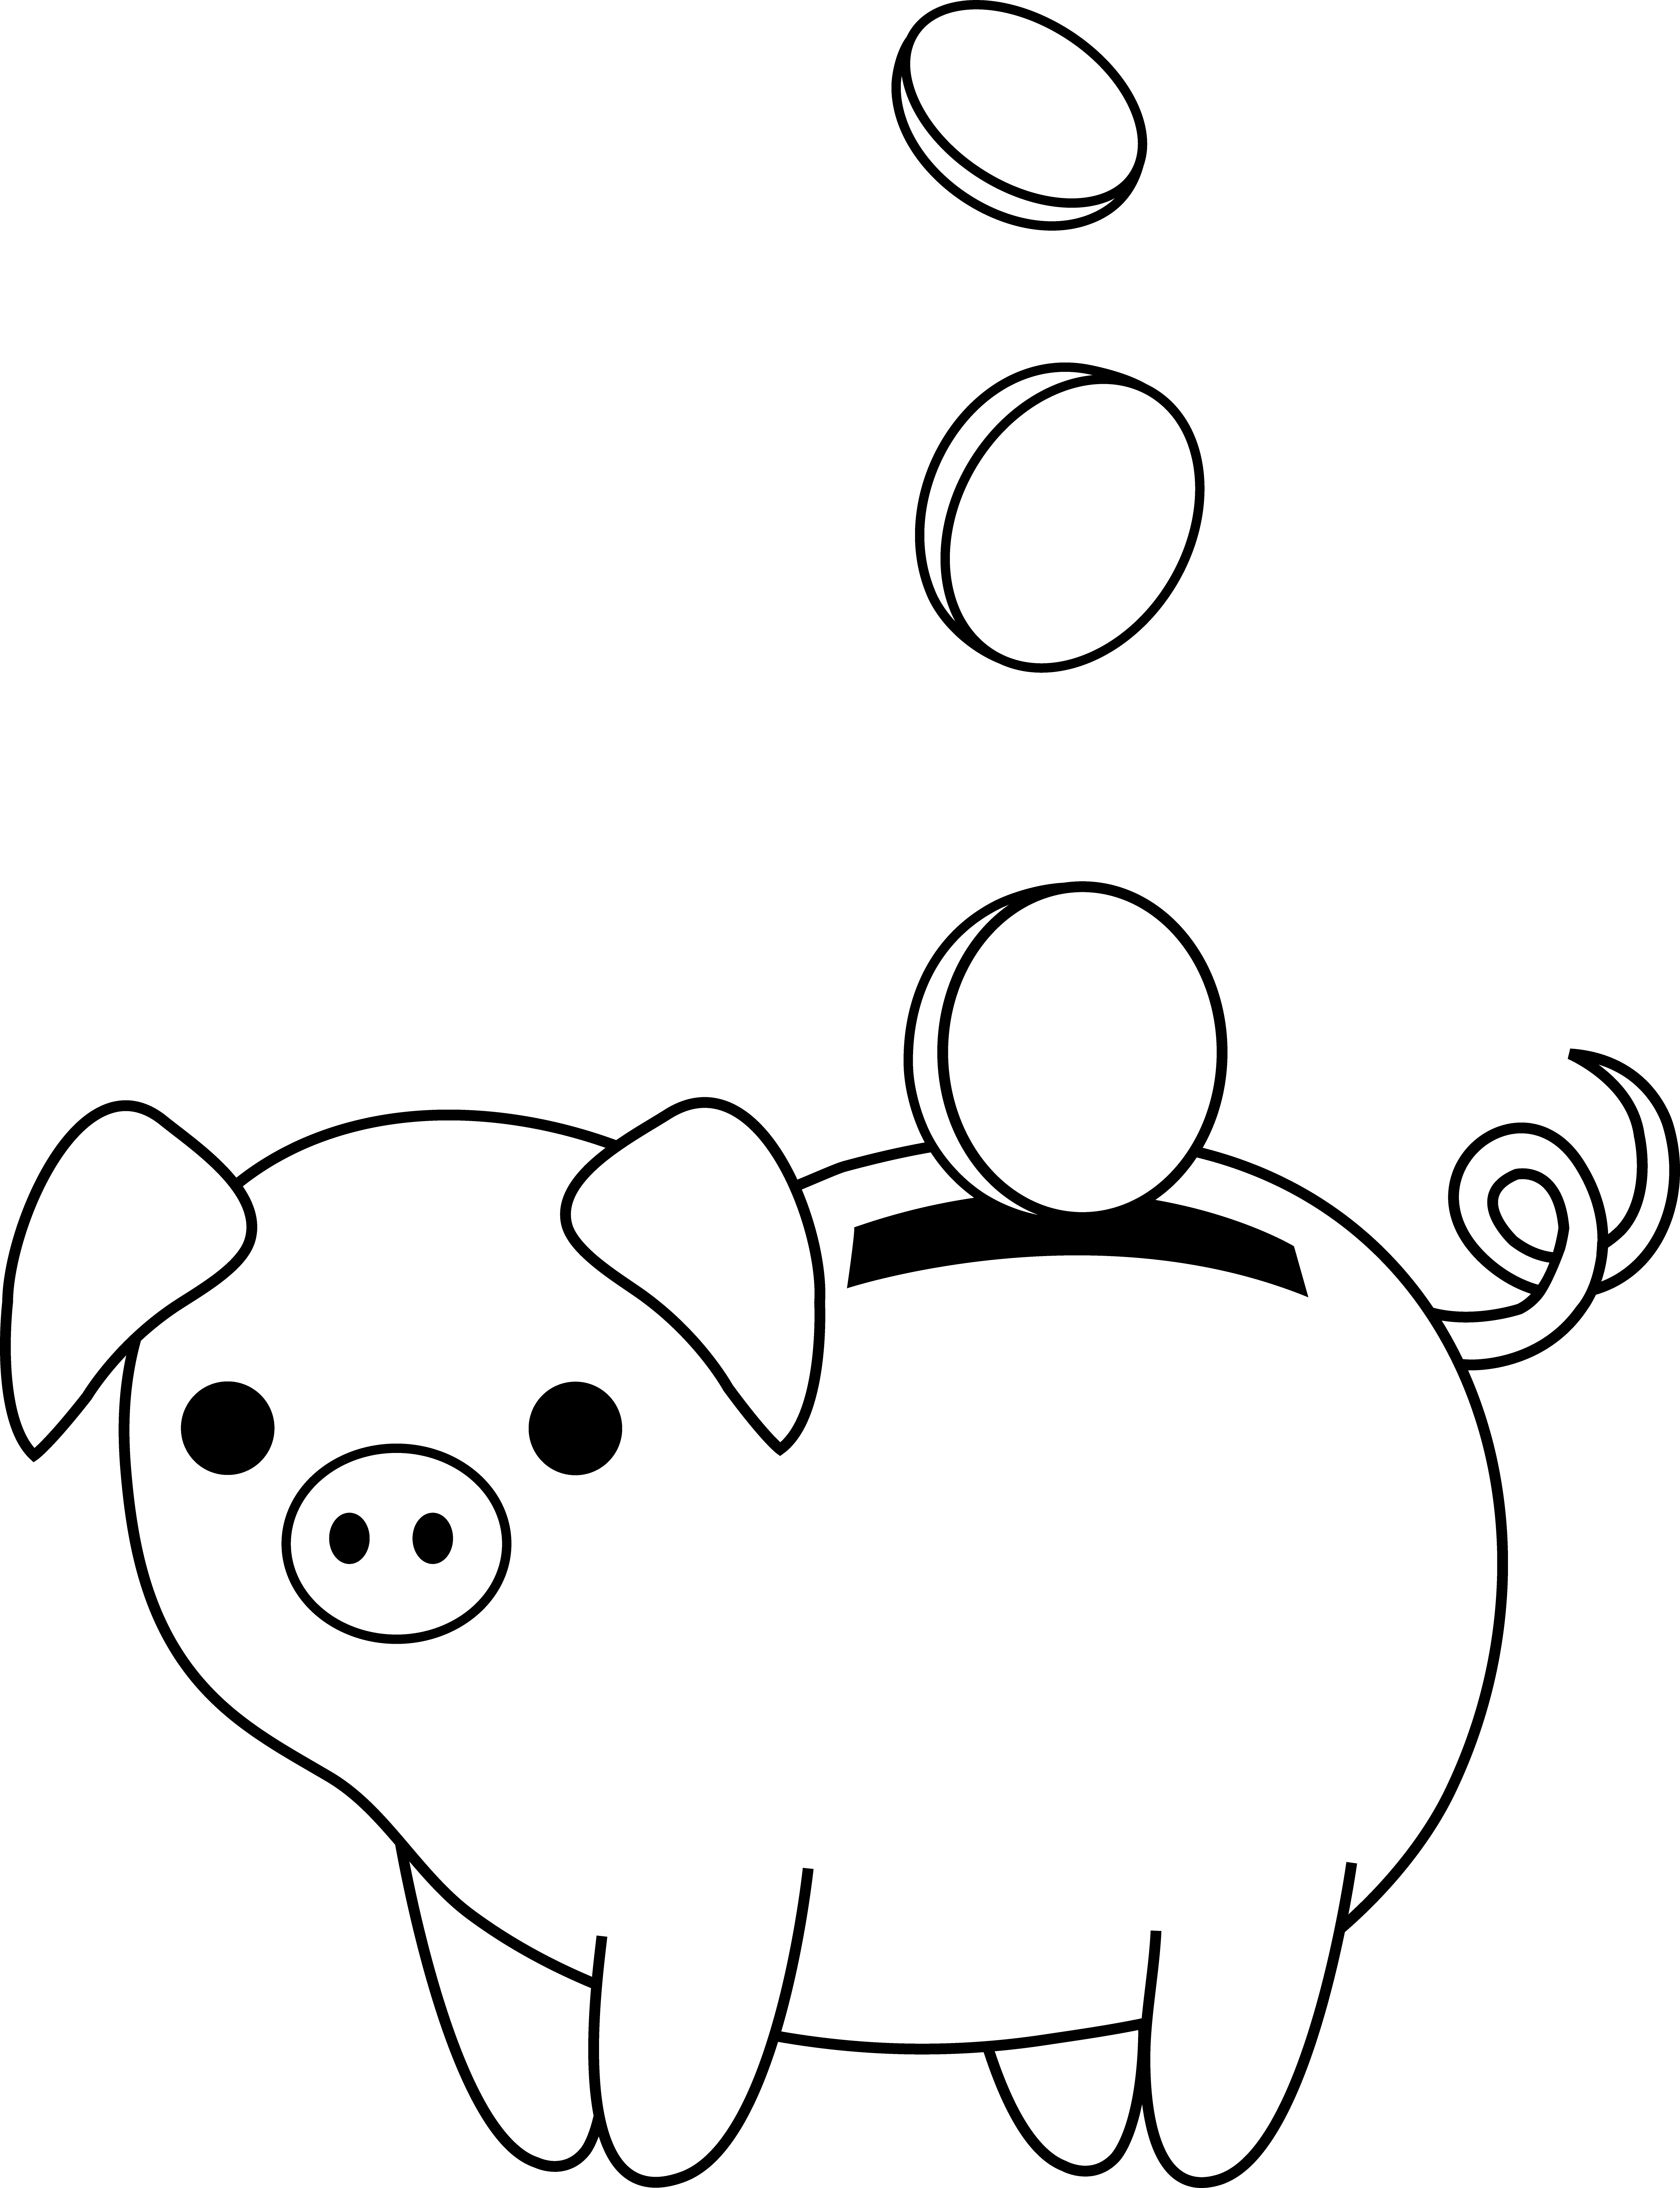 Finance clipart black and white. Piggy bank colorable line